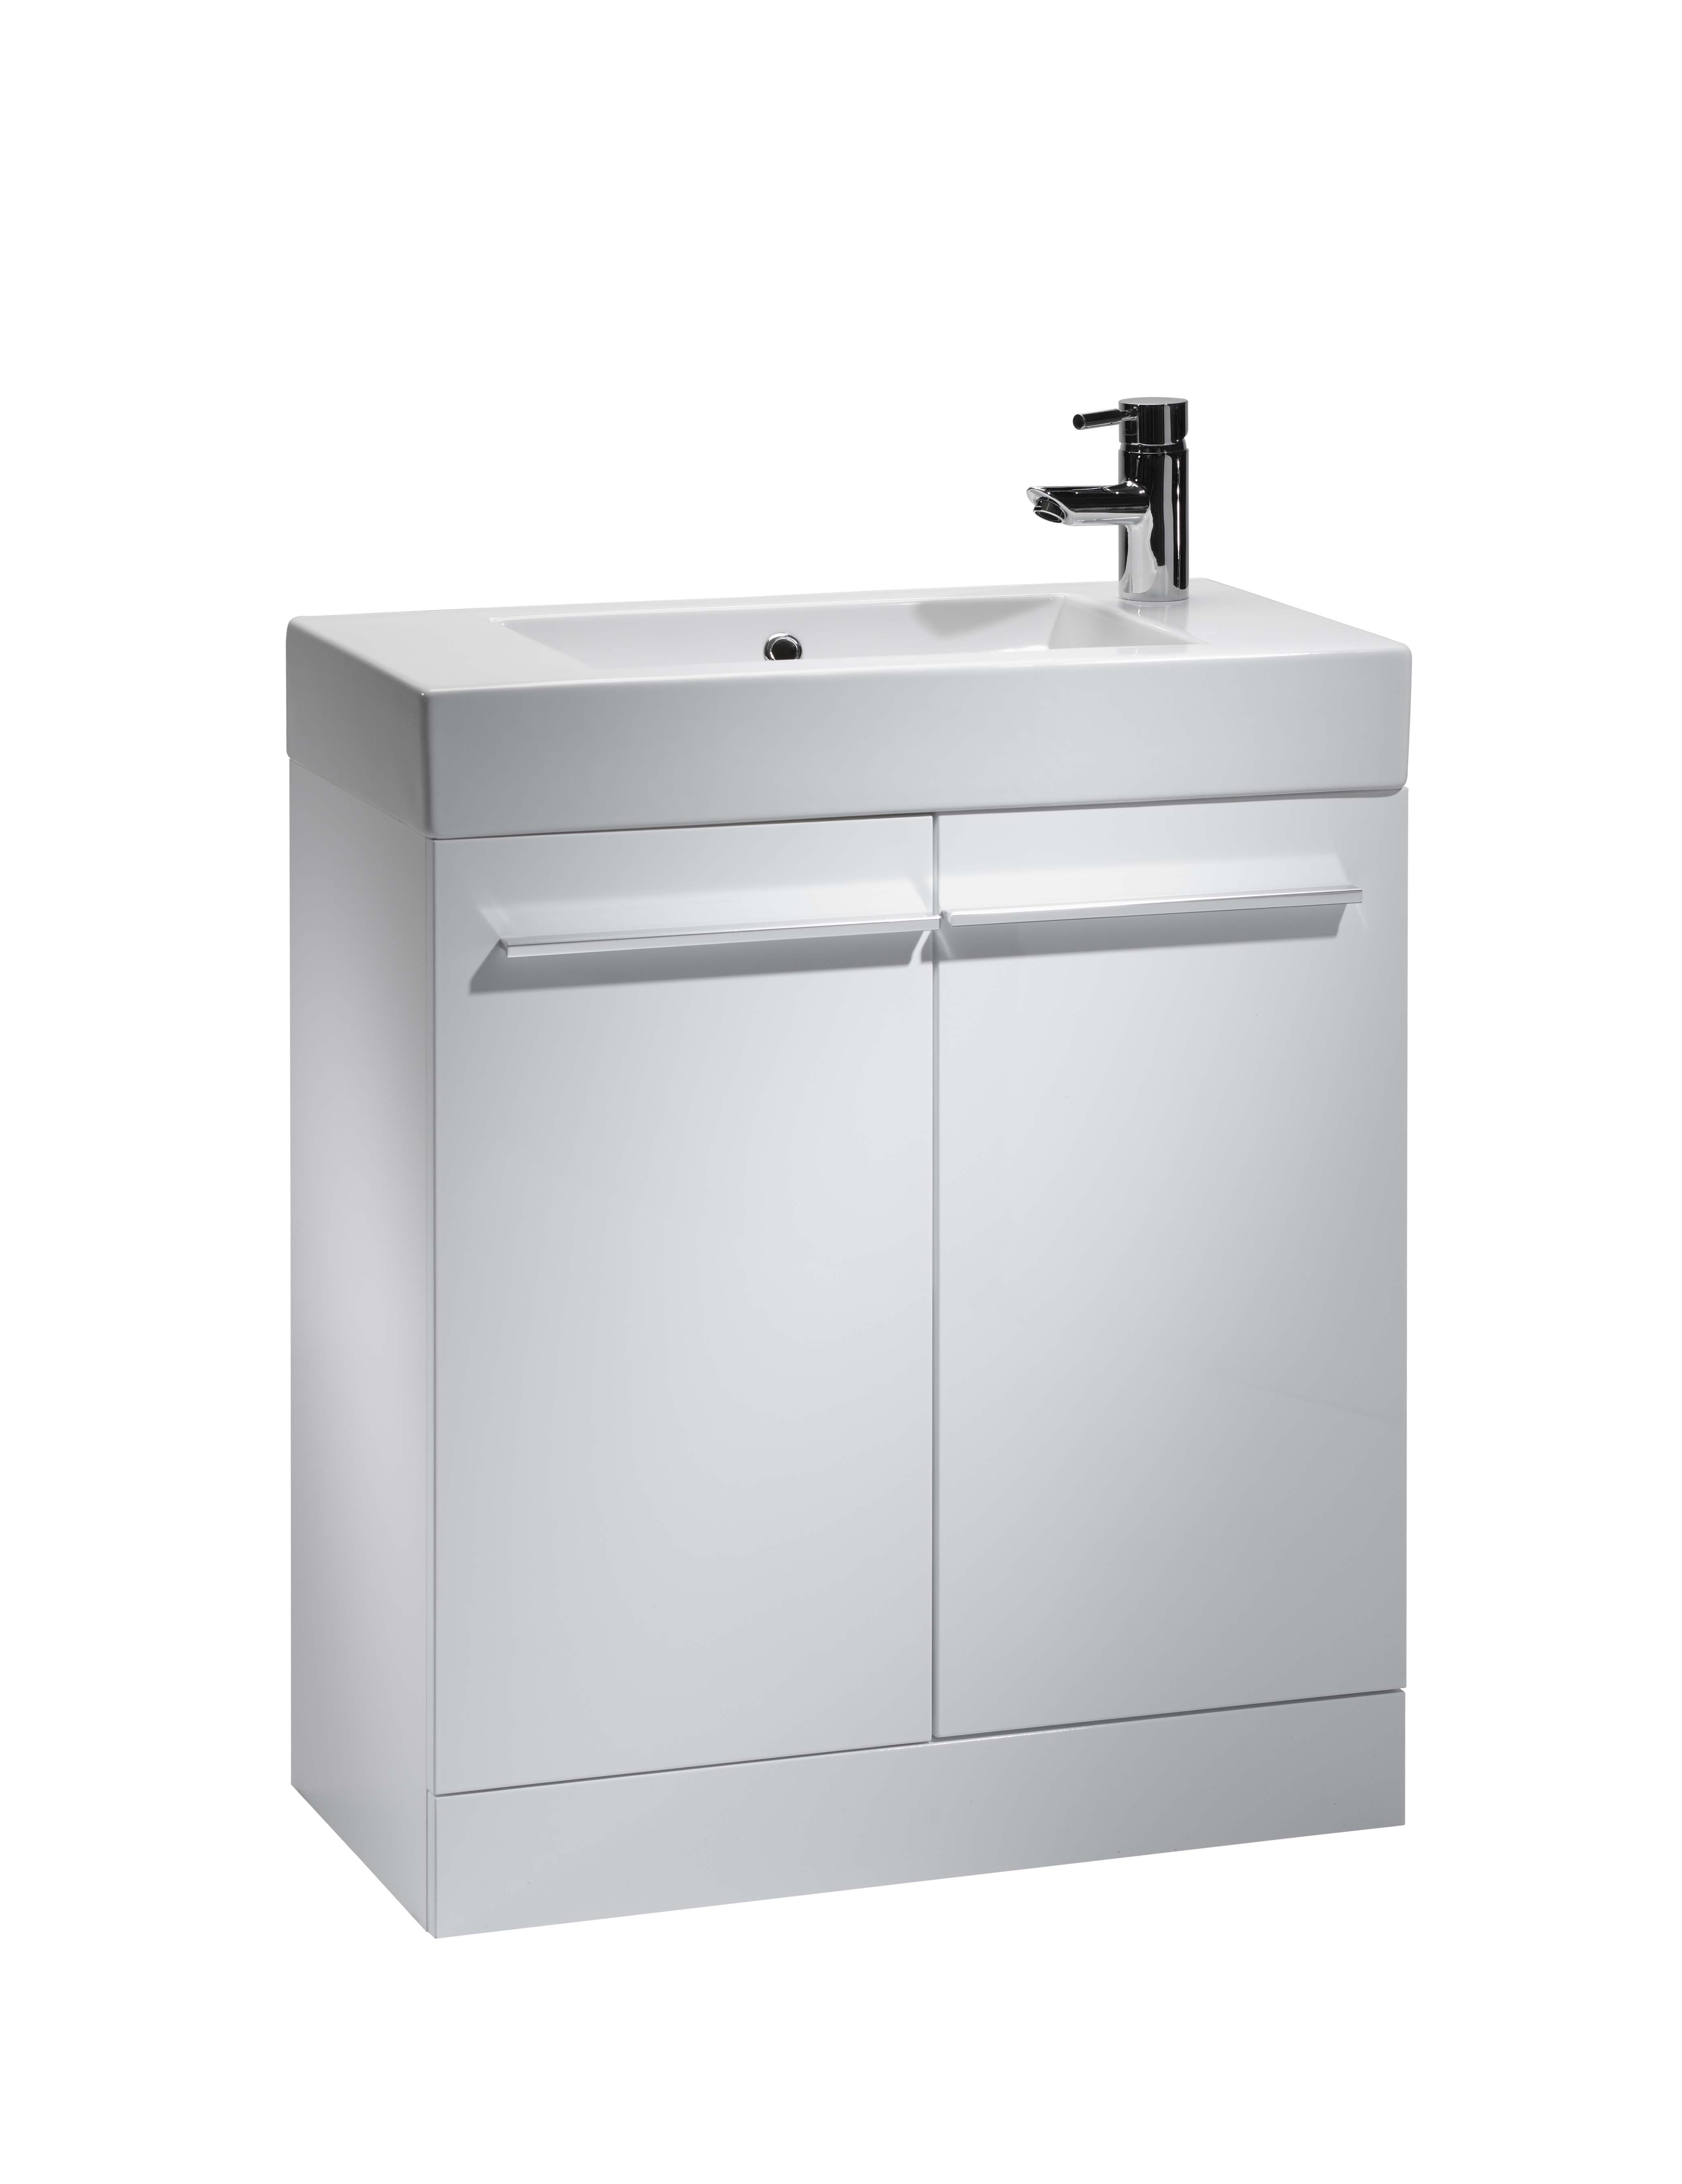 click on 70cm Floor Standing Vanity Unit image to enlarge